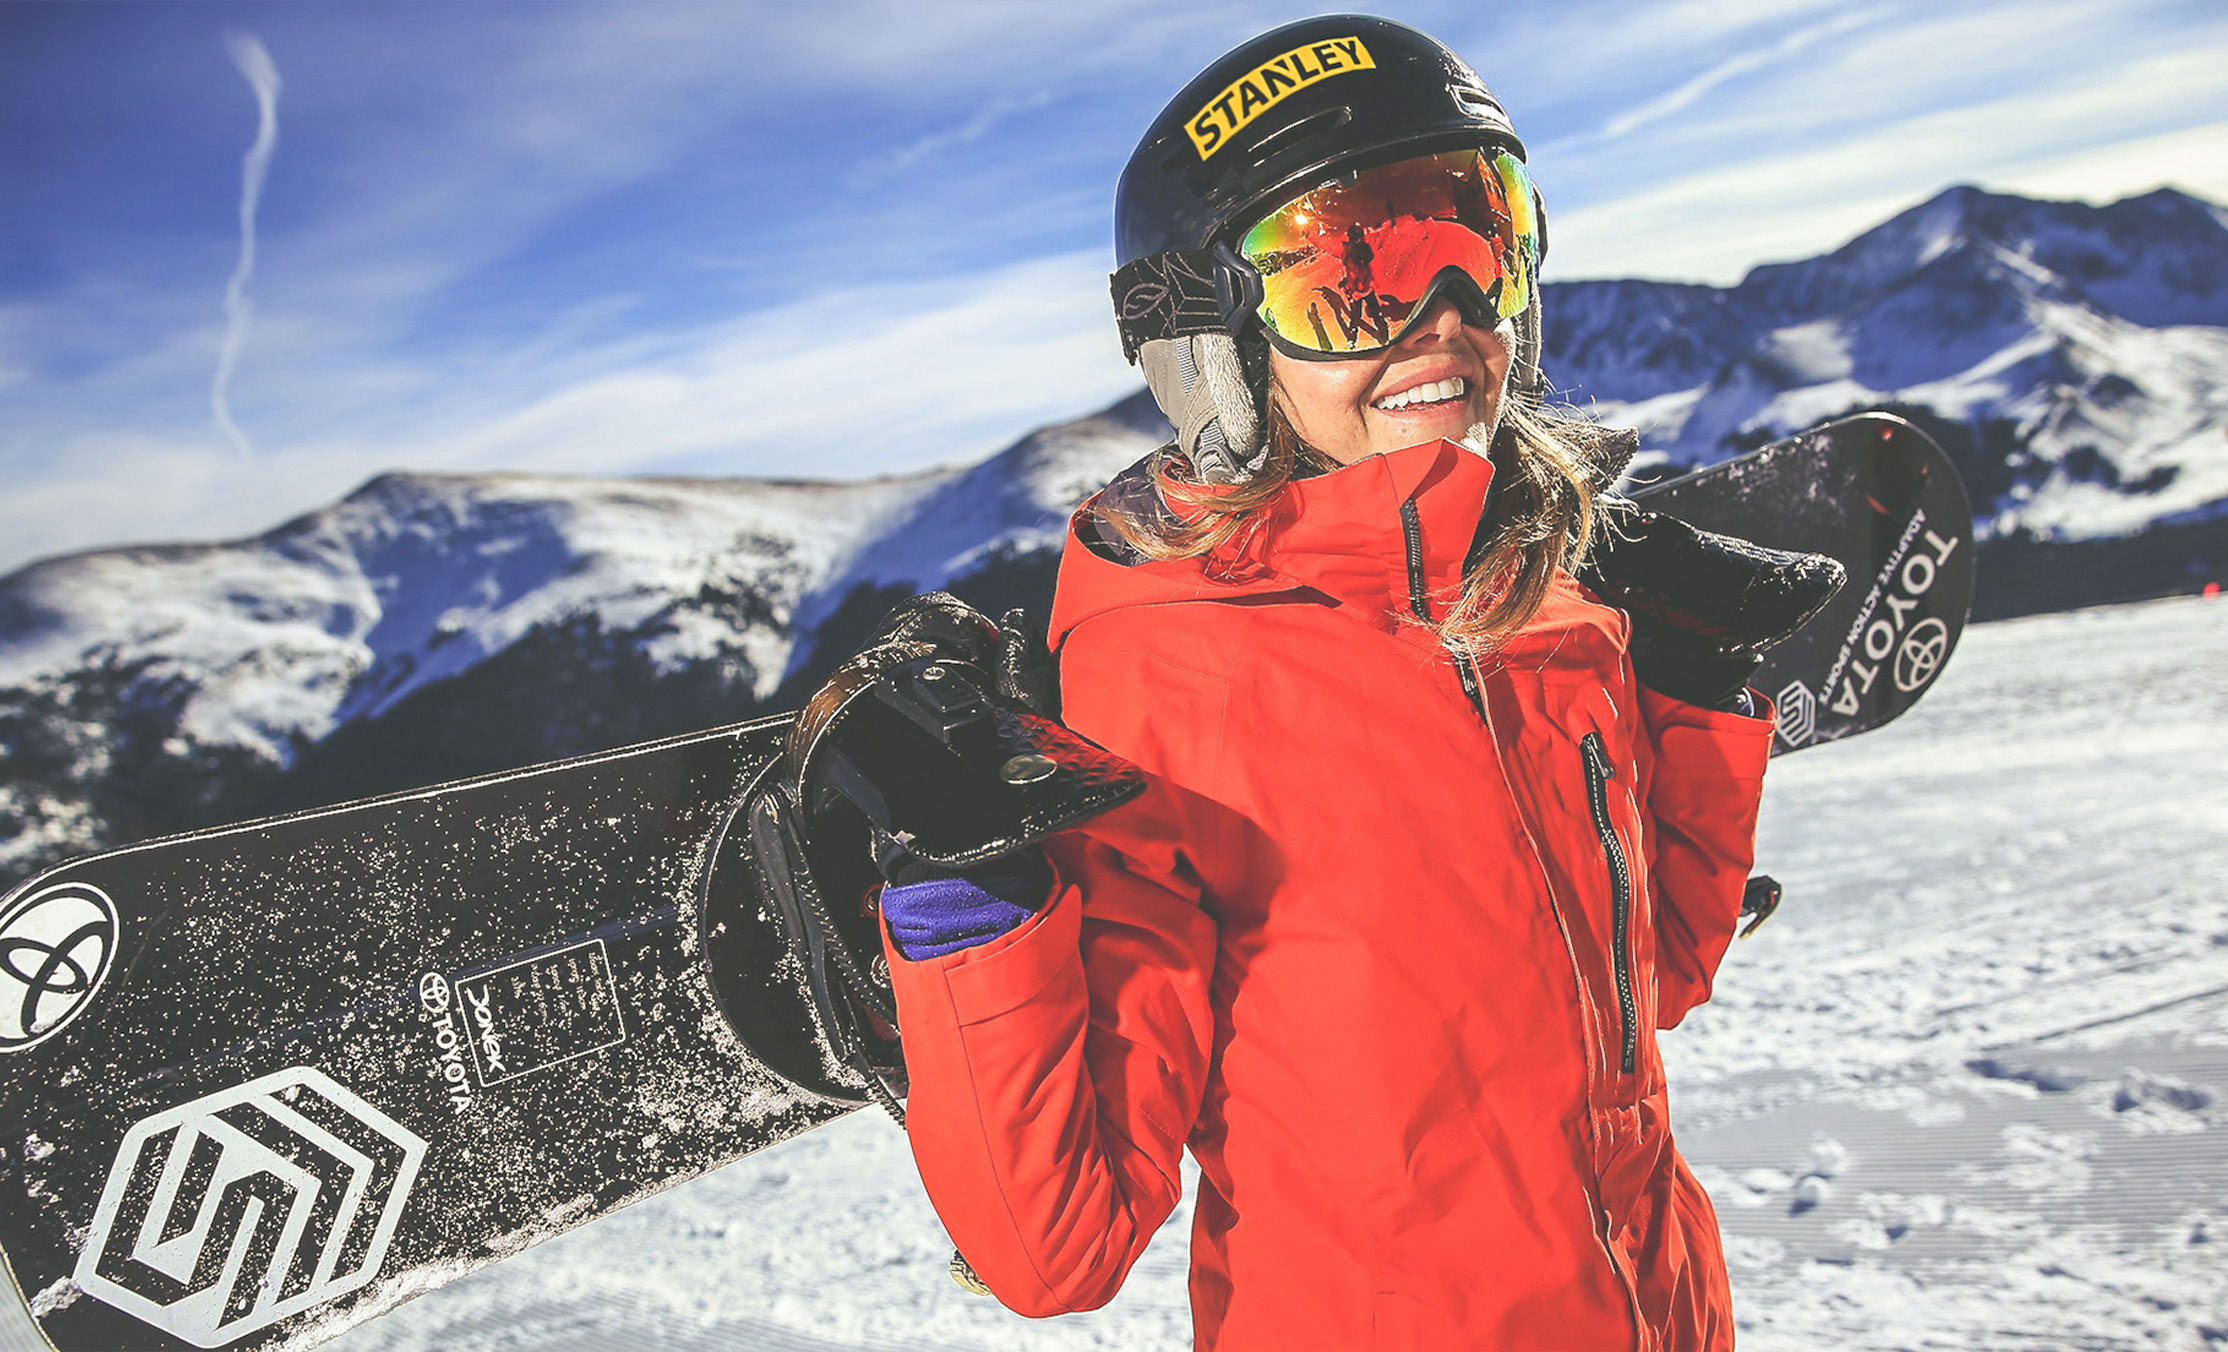 Those Who Inspire - Amy Purdy